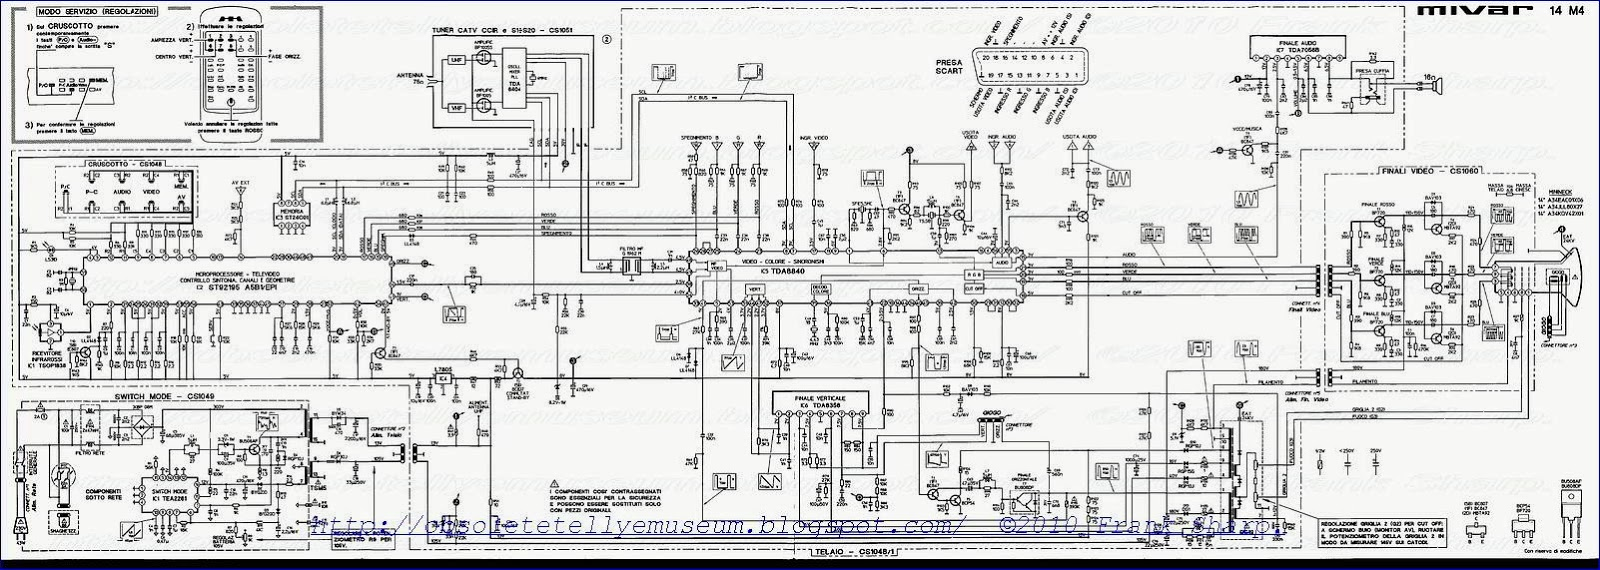 Obsolete Technology Tellye Mivar 14m4 White Chassis Cs1046 Circuit Diagram Of Synchronized Mains Voltage Power Control Via The I2c Bus Adjustments Can Be Made Horizontal And Vertical Geometry Sawtooth Generator Drives Output Drive